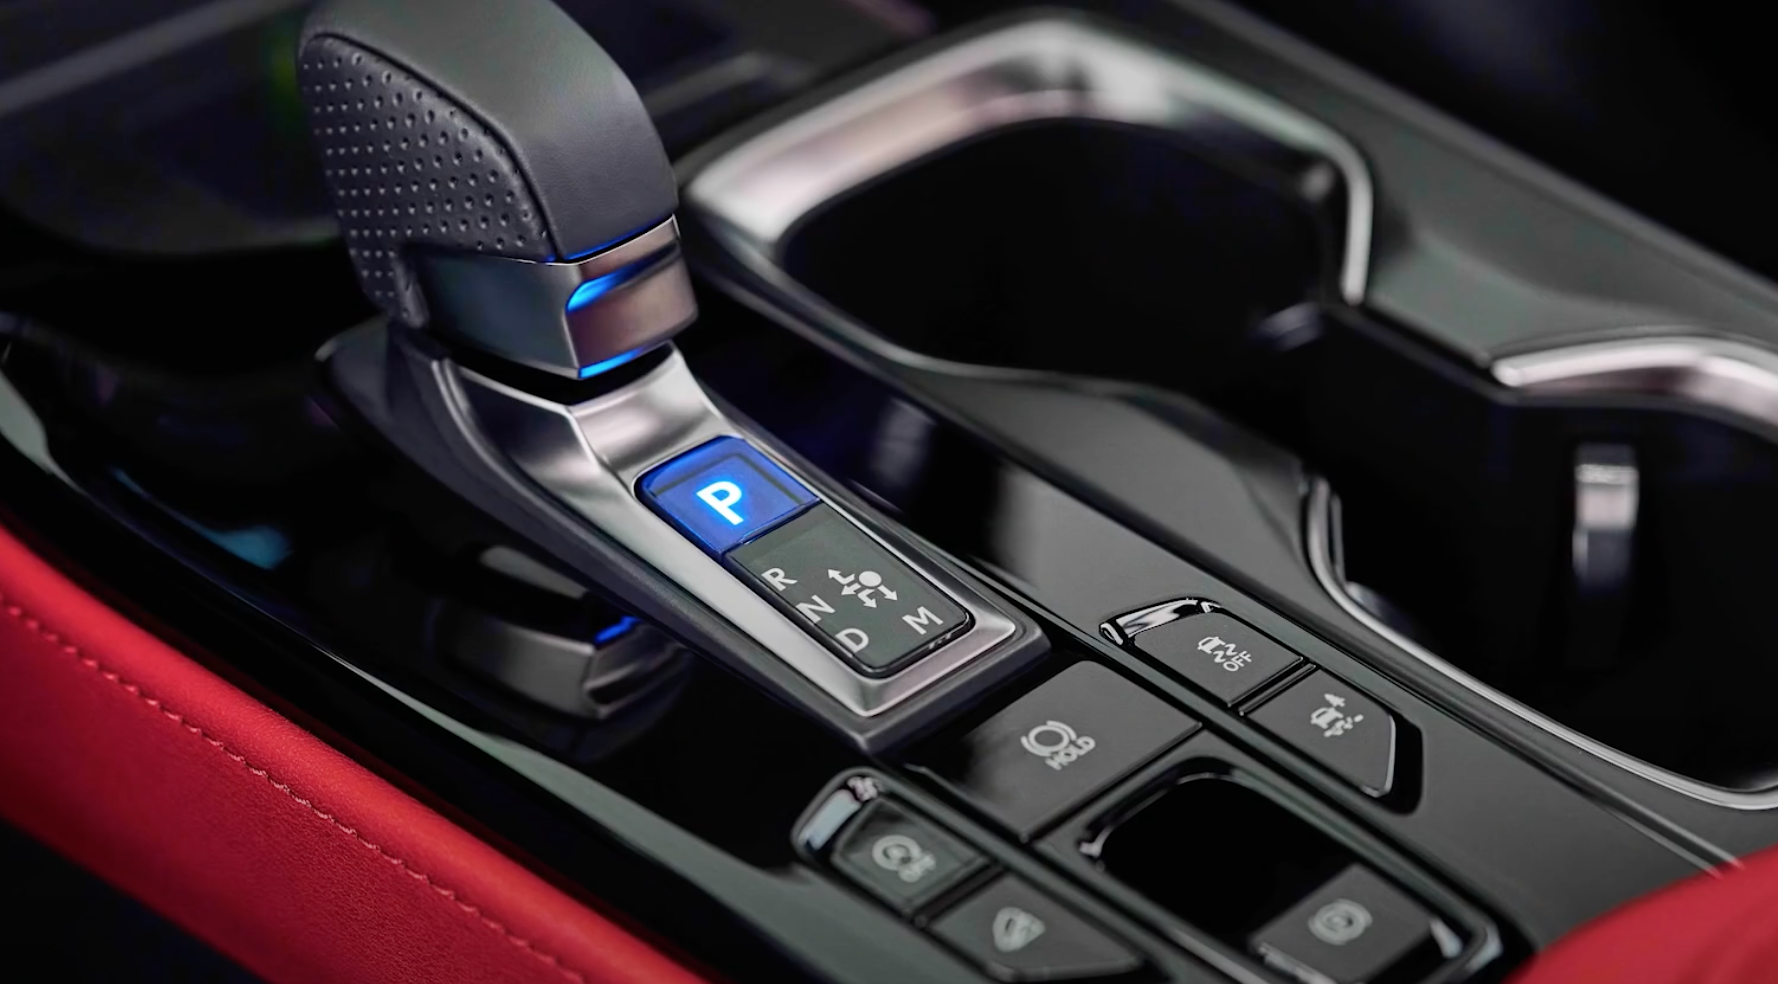 Photograph of the stick shift along with other buttons of the vehicle